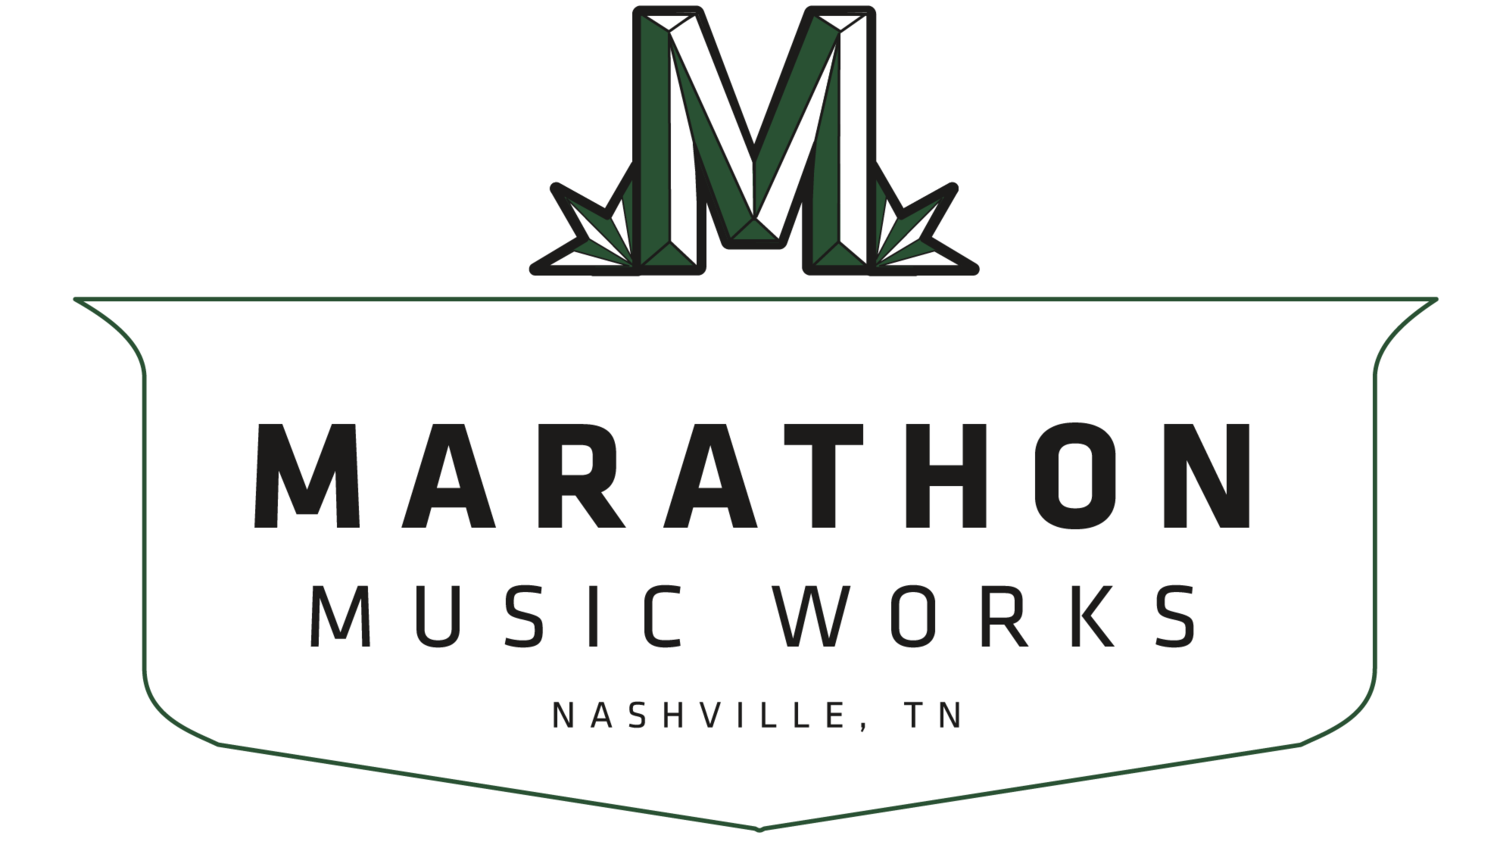 Events at Marathon Music Works